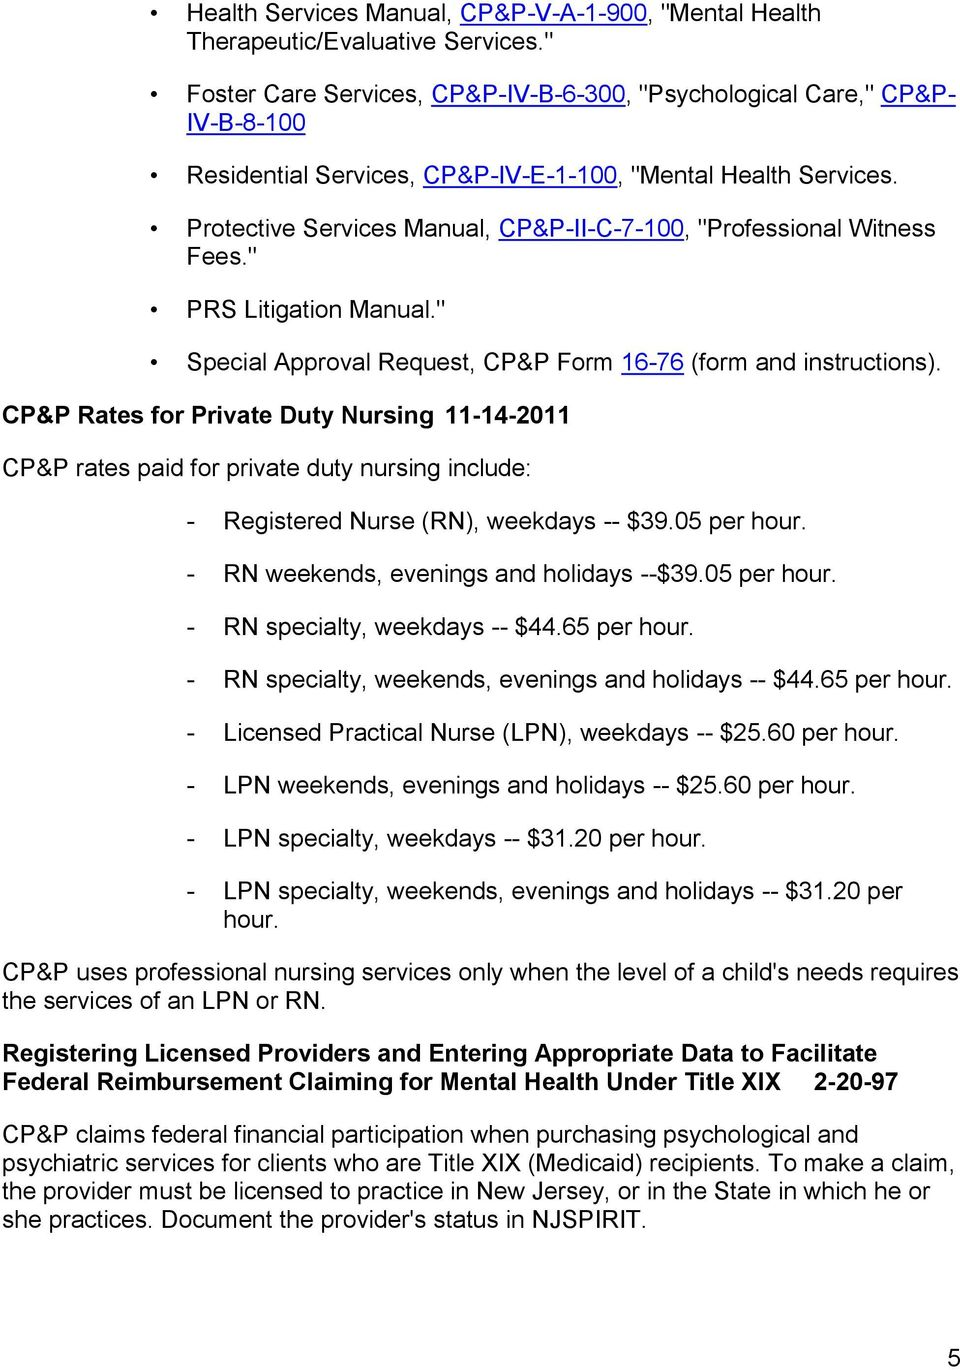 "Protective Services Manual, CP&P-II-C-7-100, ""Professional Witness Fees."" PRS Litigation Manual."" Special Approval Request, CP&P Form 16-76 (form and instructions)."